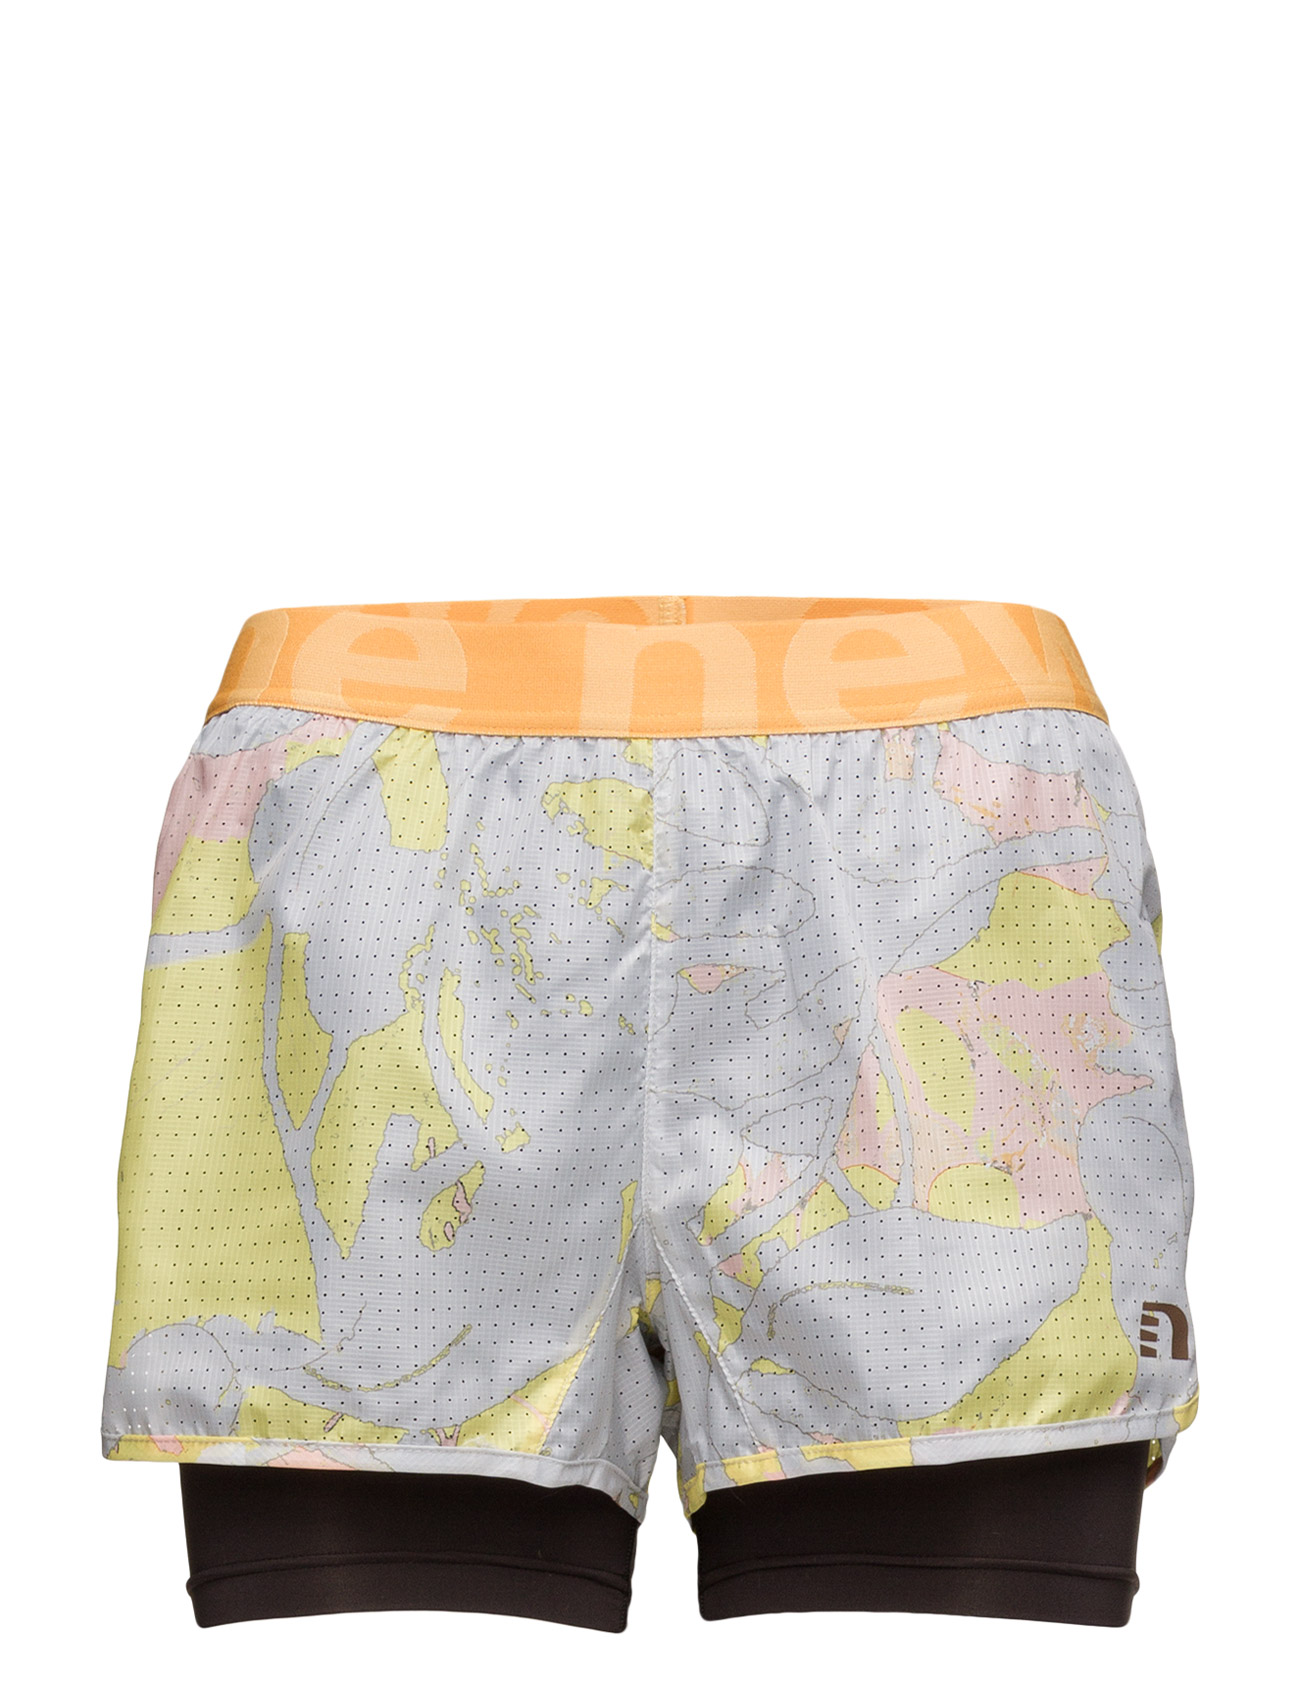 Imotion Printed 2-Lay Shorts Newline Træningsshorts til Damer i